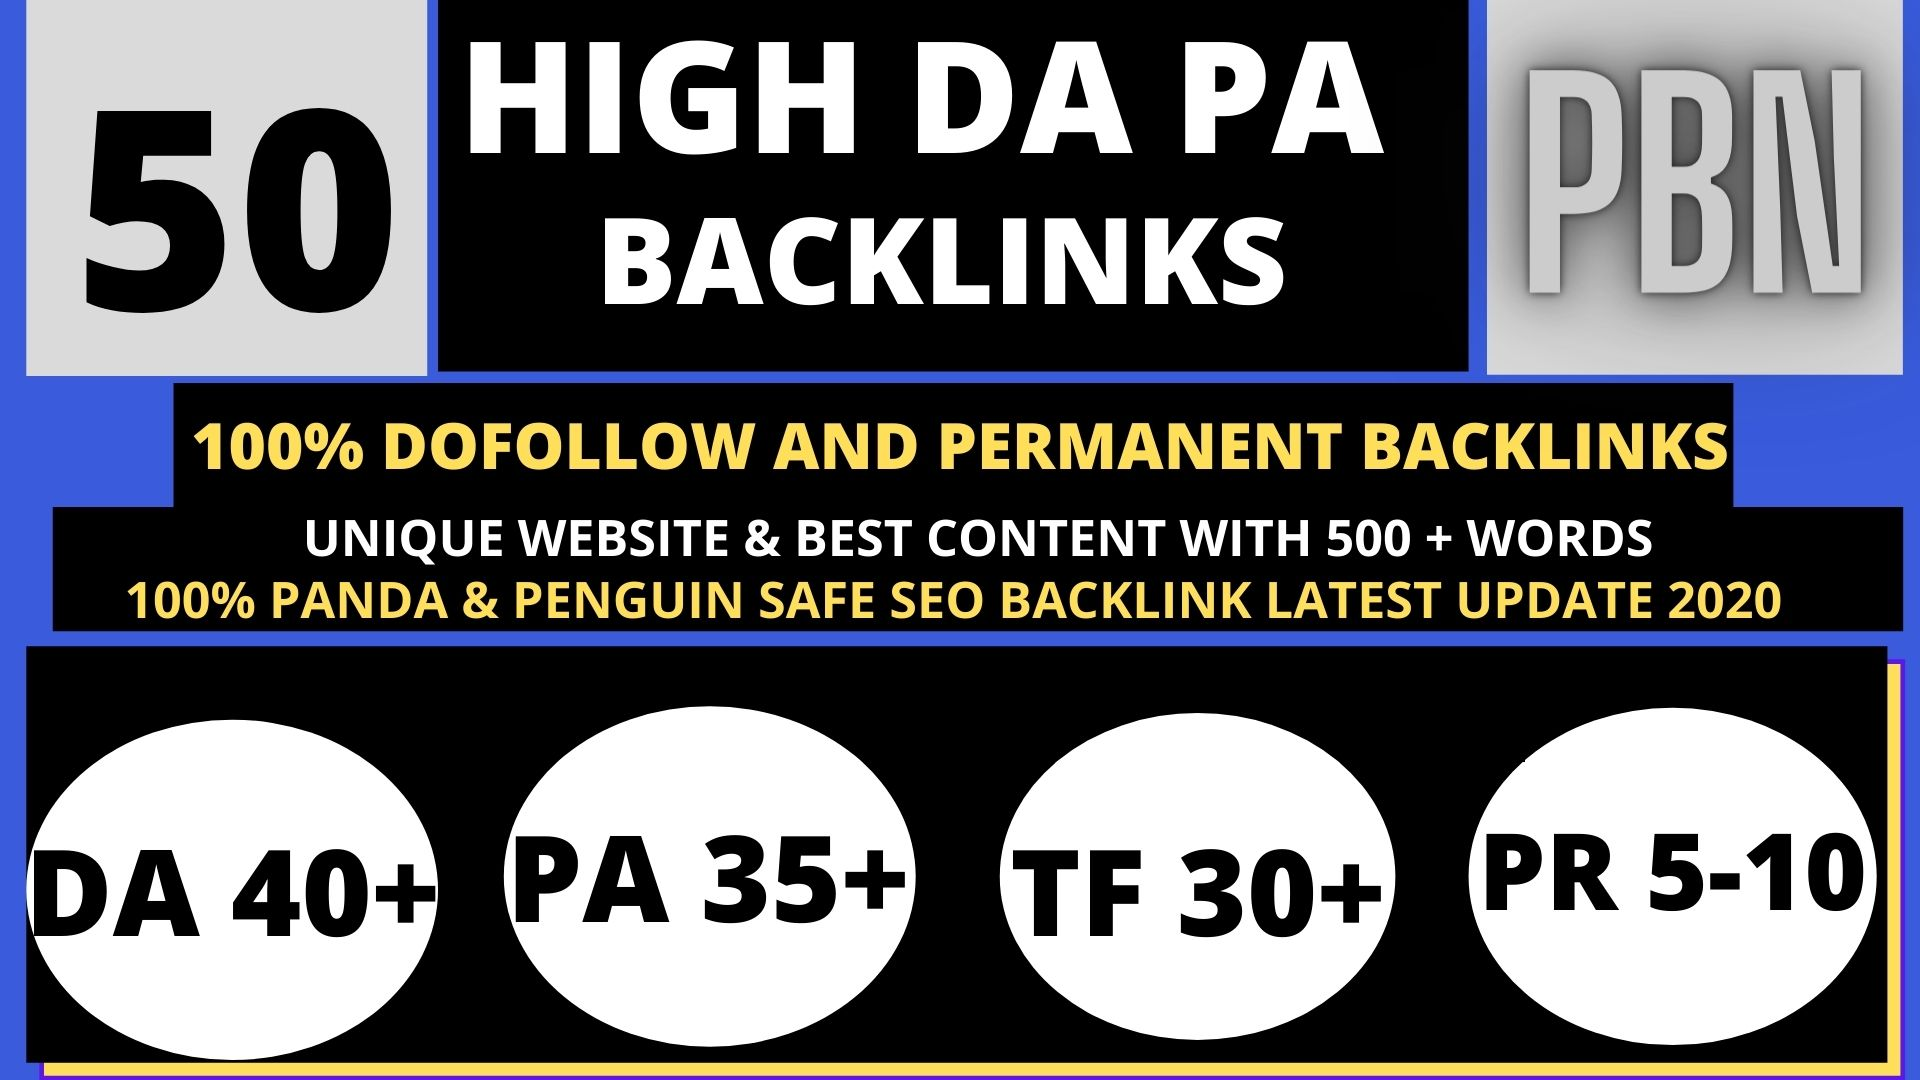 Manually create 50+ Backlink with high DA 40+ PA 35+,  DOFOLLOW with 40+ Unique websitelink